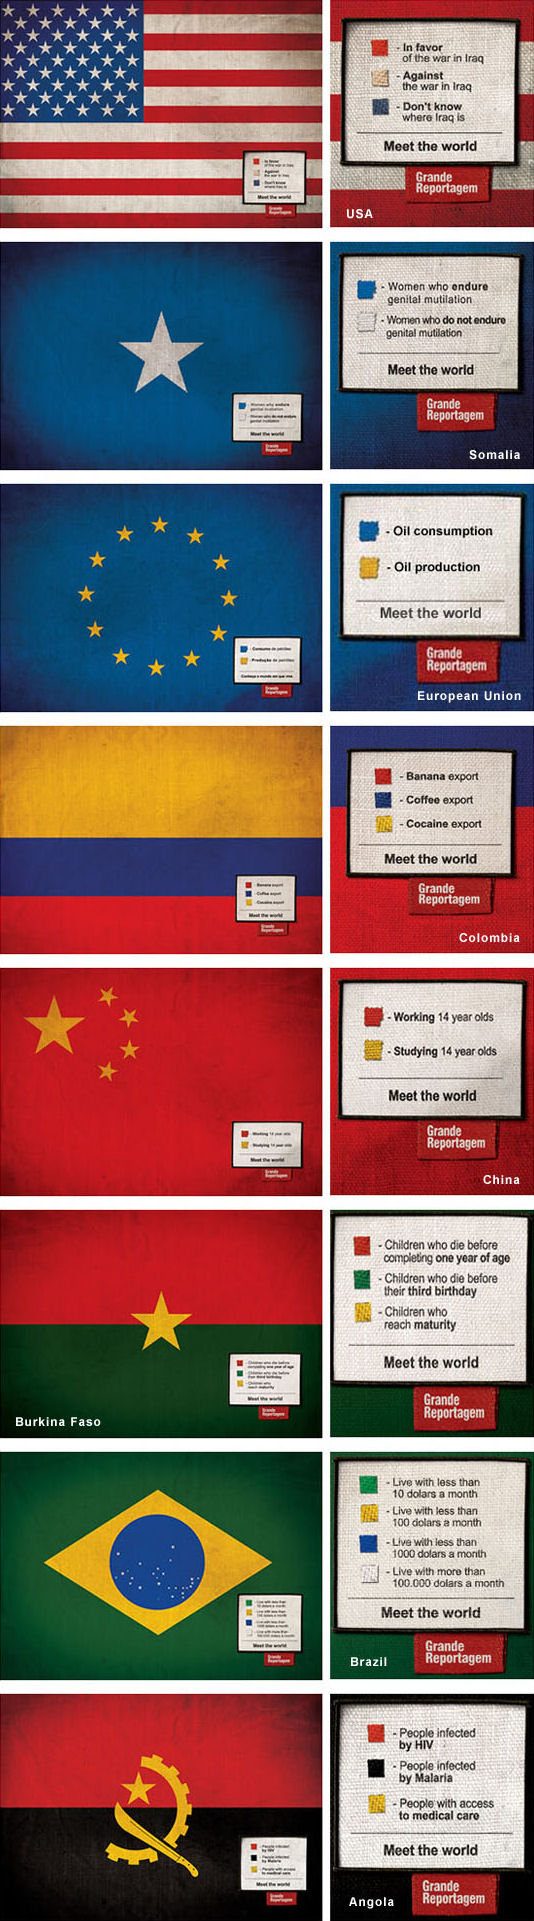 Meet the World- By Flag - Click To View Image